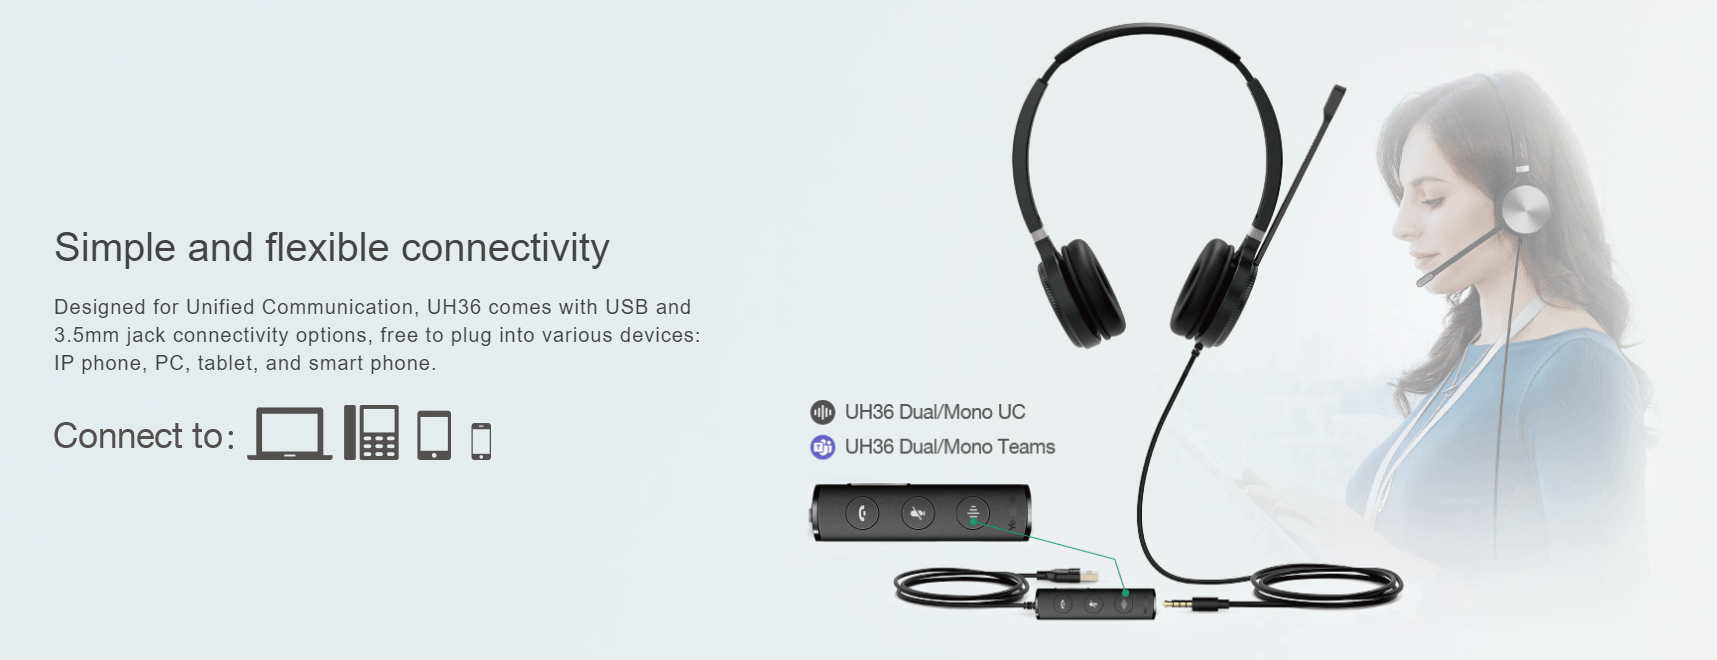 Yealink UH36 Dual Wired USB Headset (Certified For Use with MS Teams)